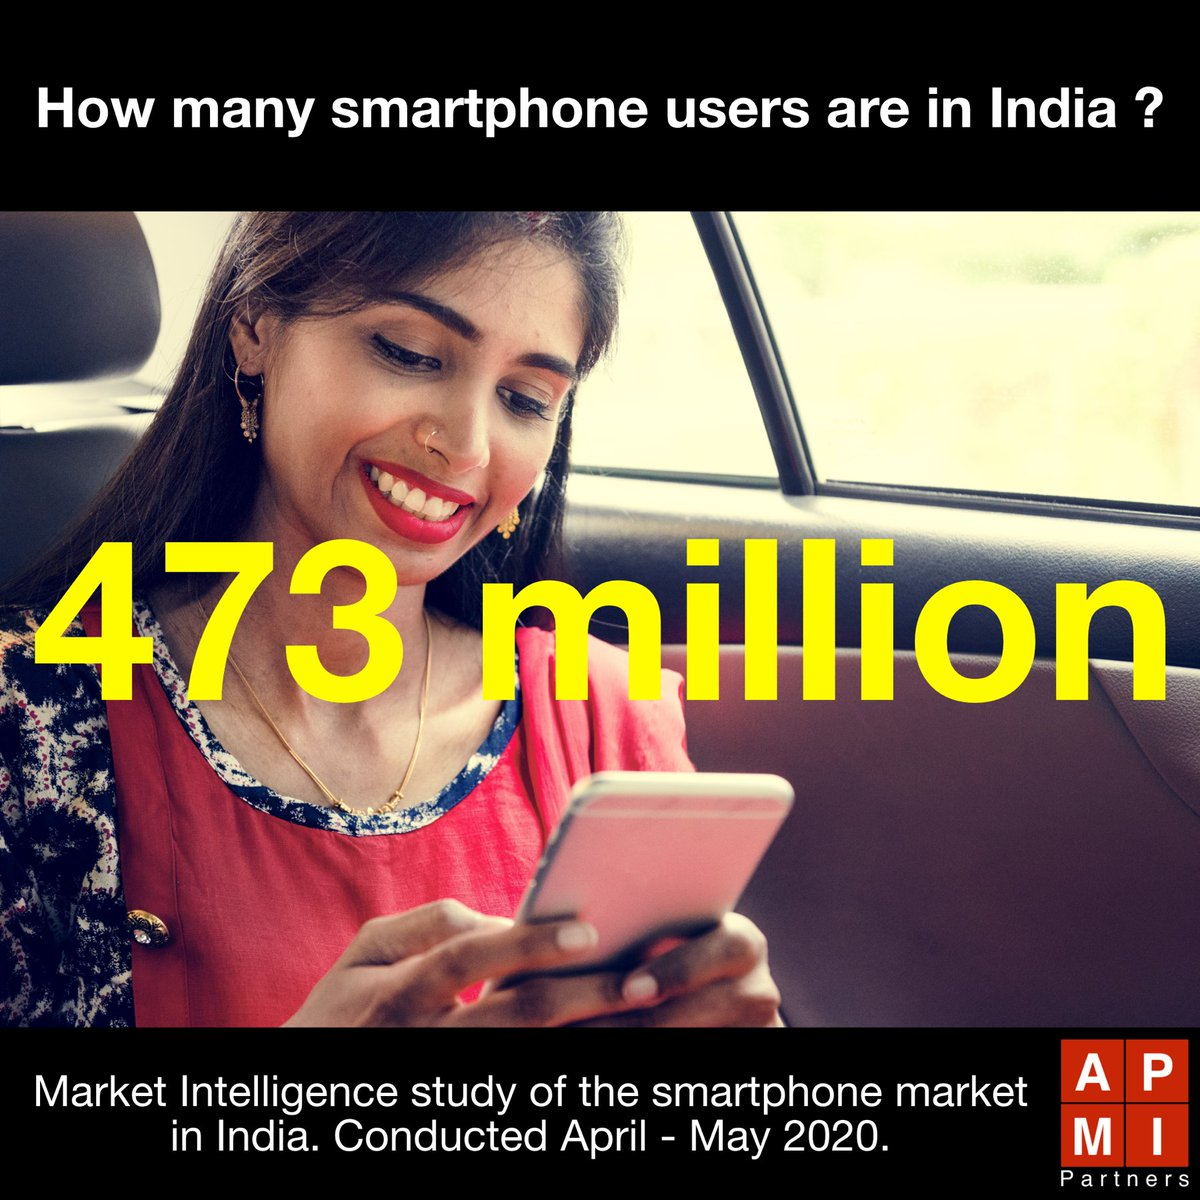 Did you know… 473 million… that's how many #smartphone users #India currently has out of its population of 1.3 billion | #marketintelligence #APMIPartnerspic.twitter.com/LZusSMYpqw